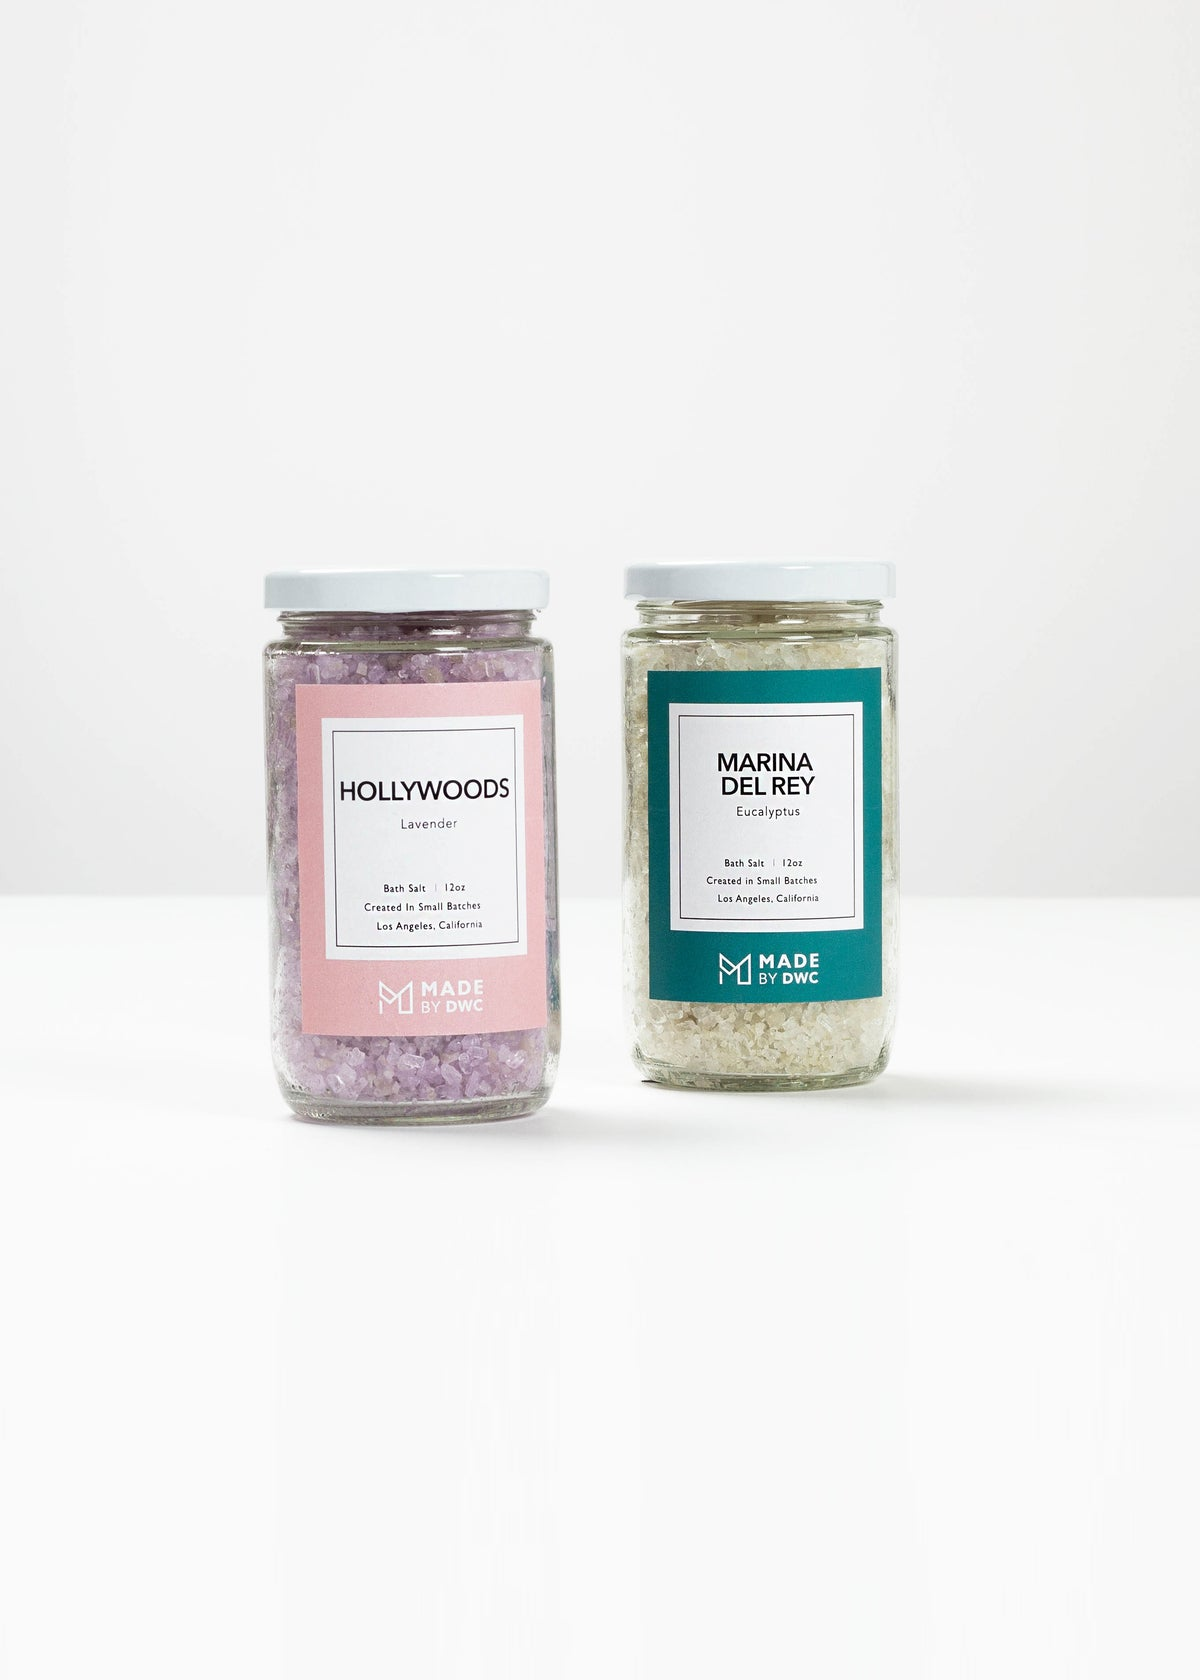 Hollywoods Bath Salts